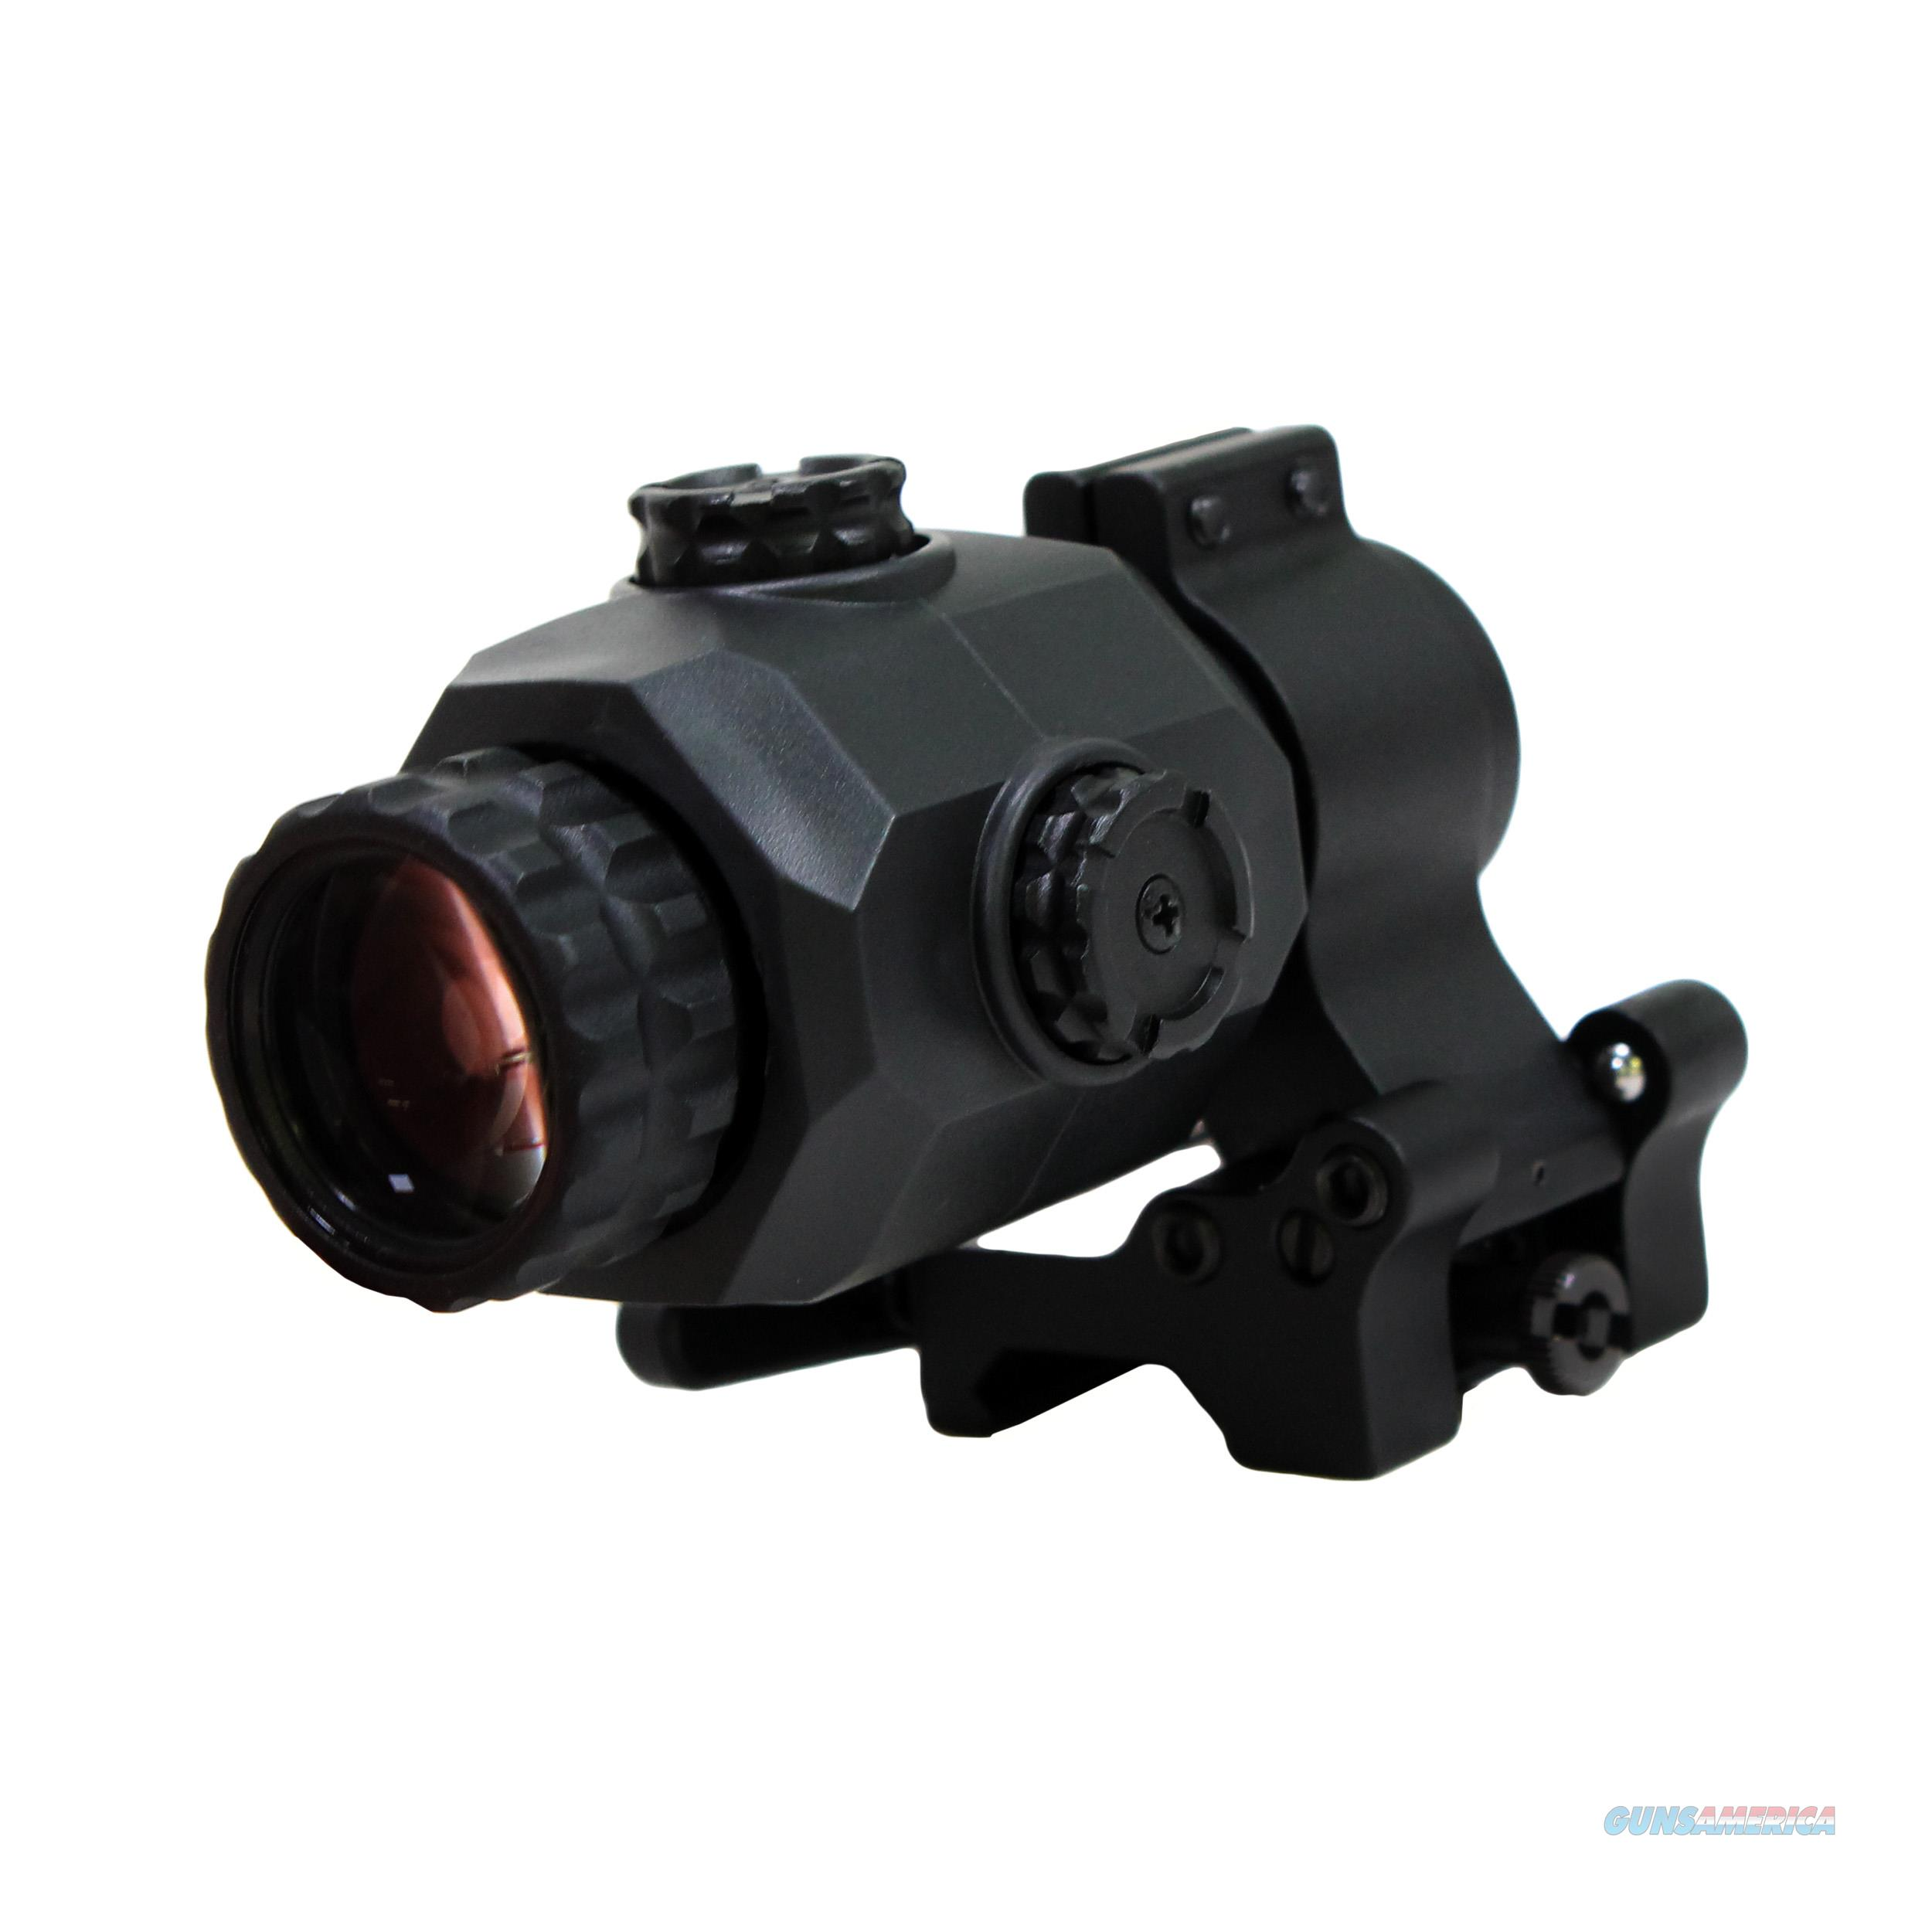 Sightmark Xt-3 Tactical Magnifier With Lqd Flip To Side Mount 19062  Non-Guns > Scopes/Mounts/Rings & Optics > Mounts > Other